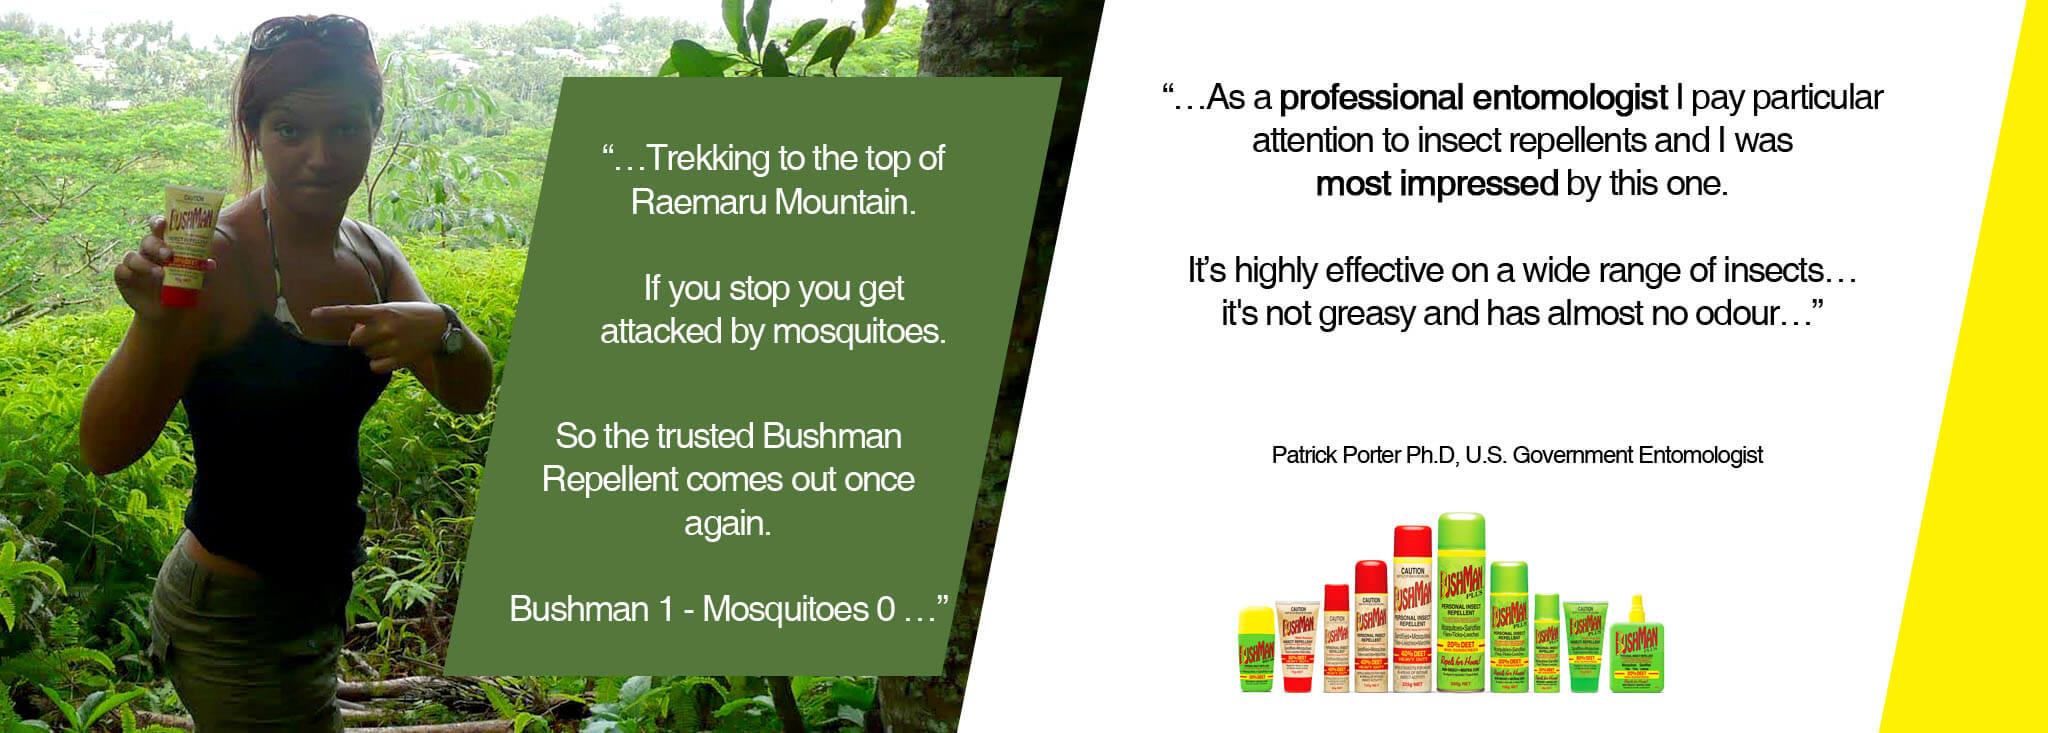 Professional entomologist says they're most impressed with Bushmans - review